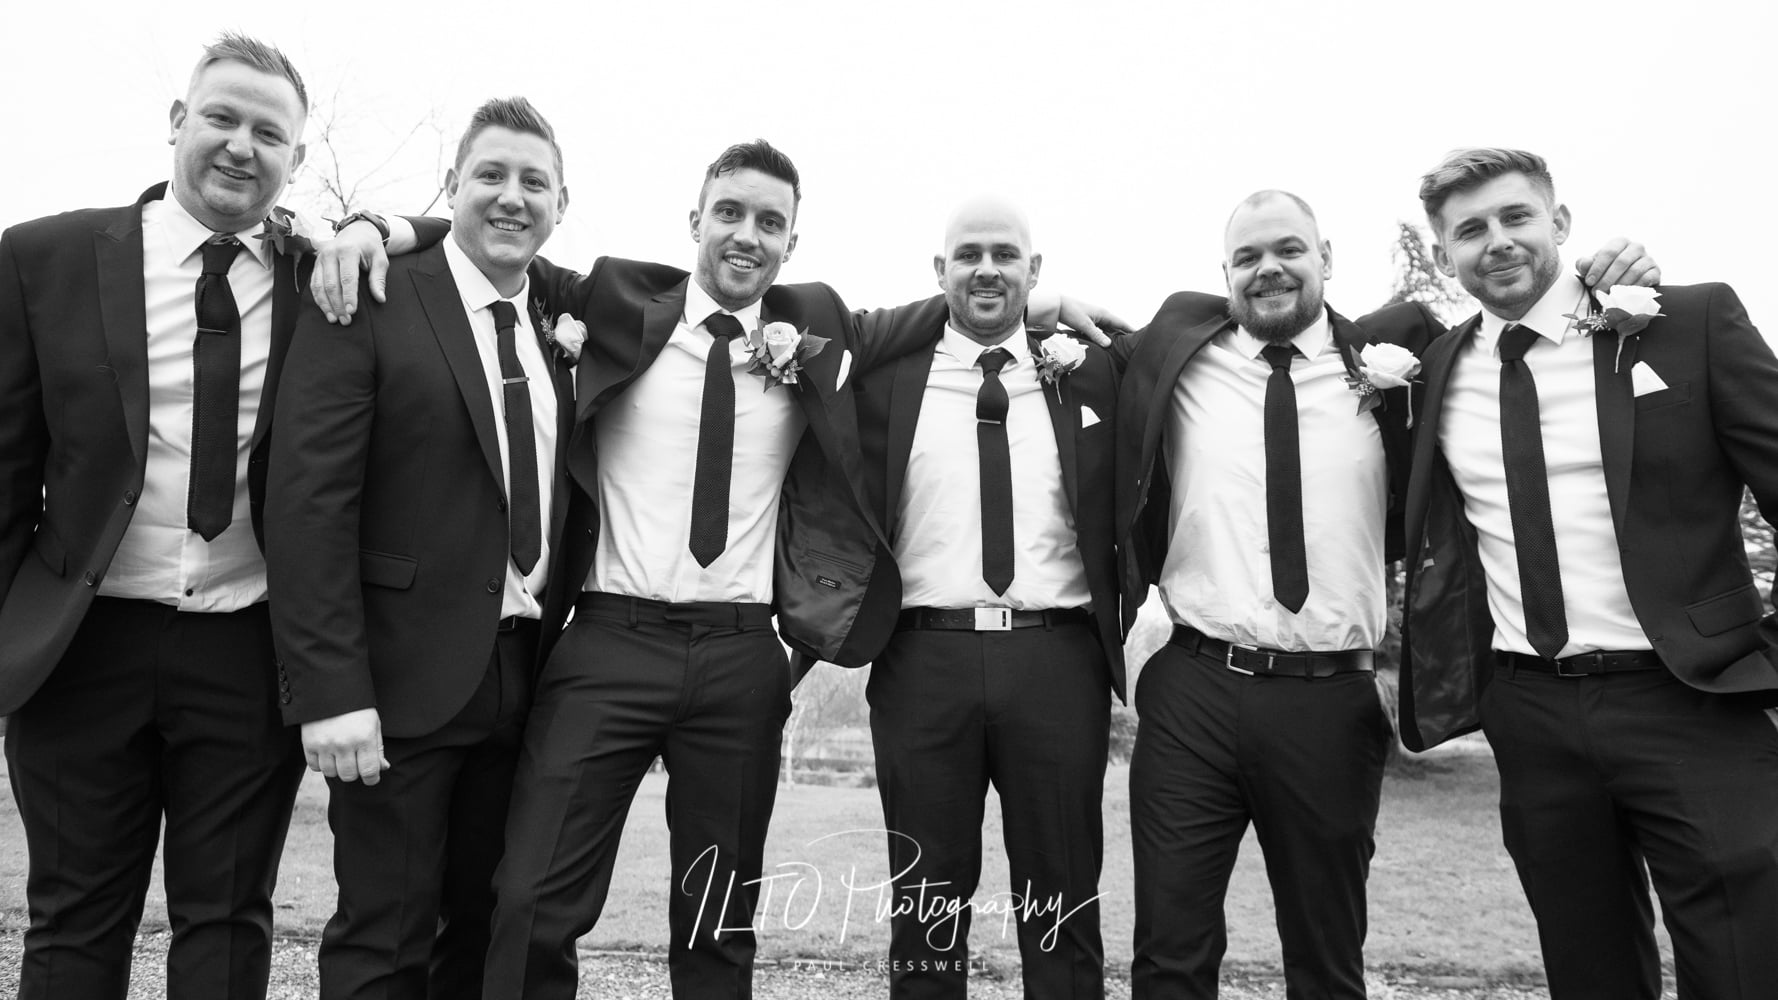 Classic wedding photography. Black and white.